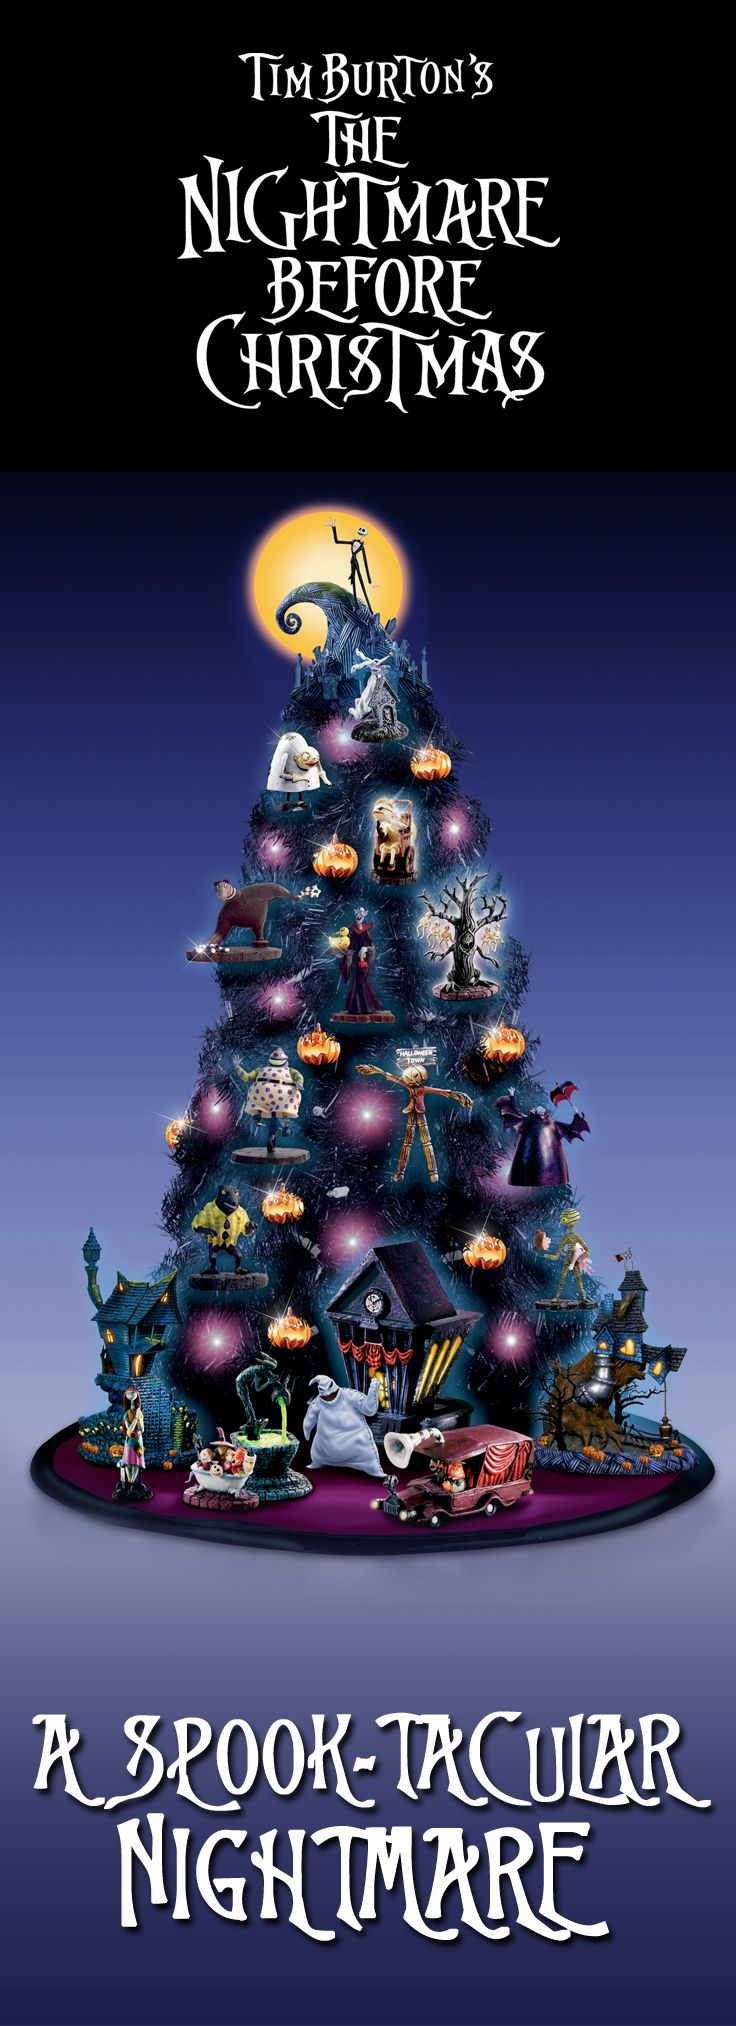 938 best NM B4 X-MAS images on Pinterest | Nightmare before ...